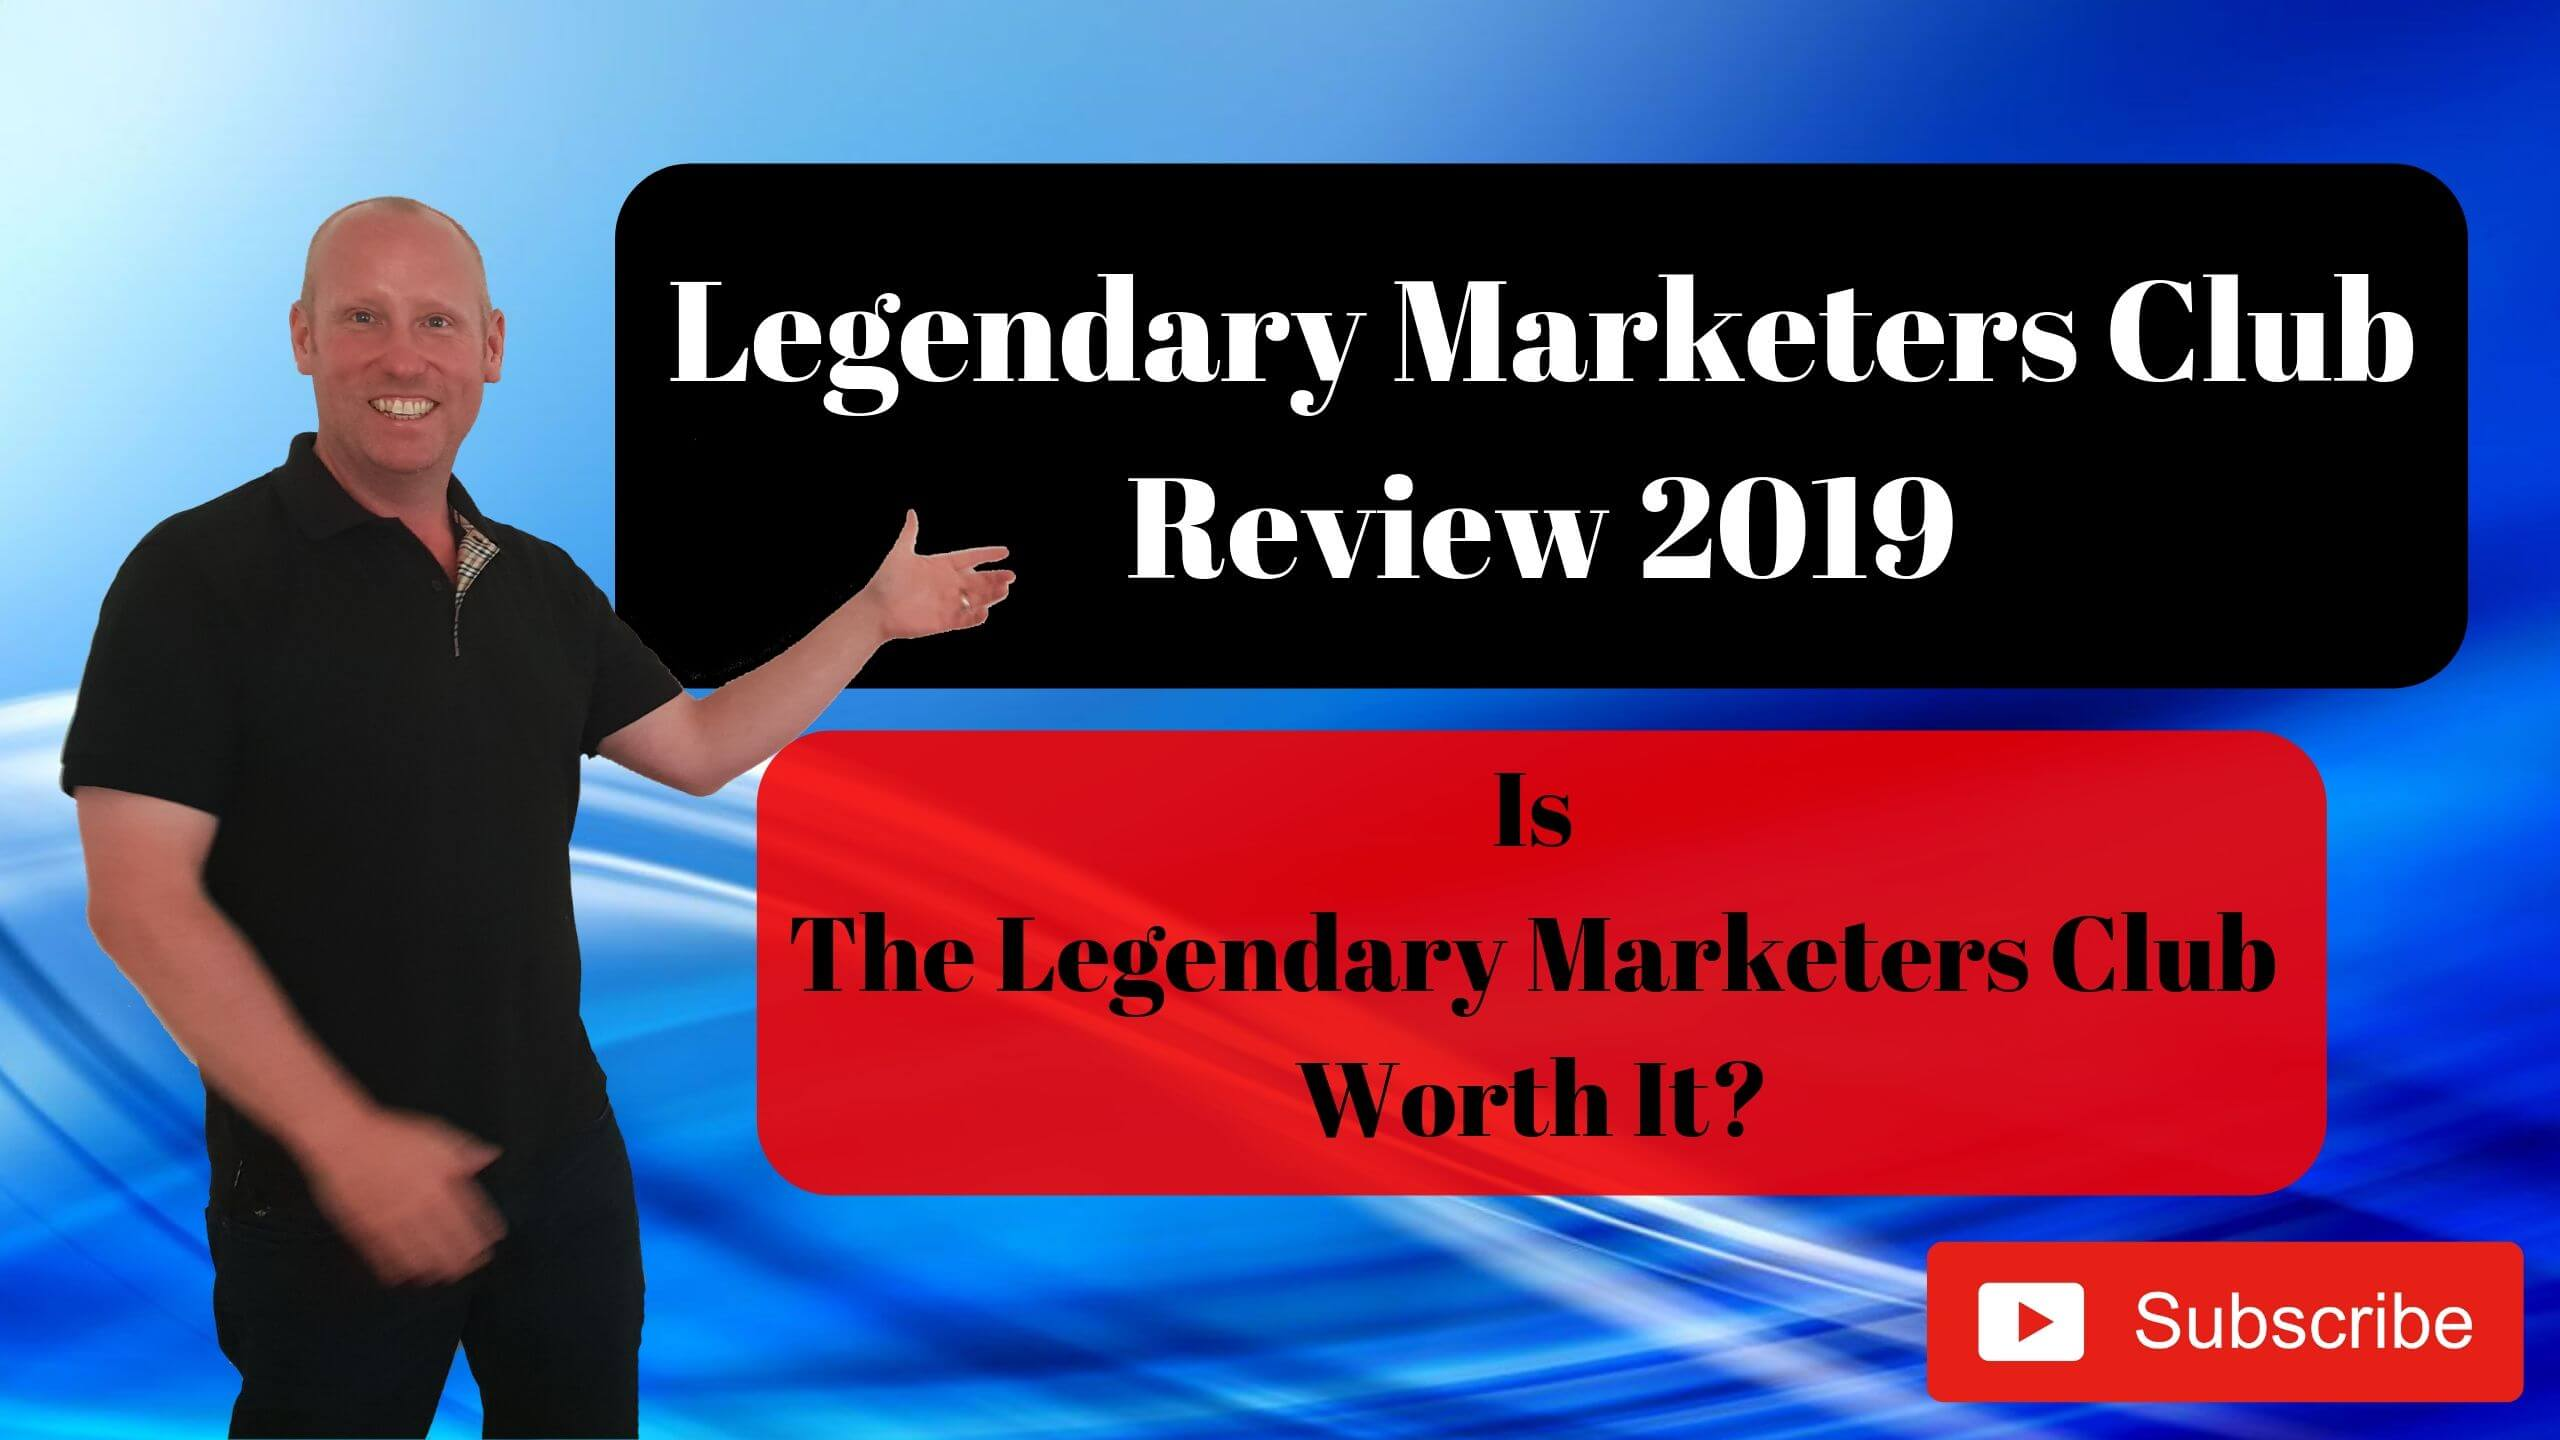 Legendary Marketer Internet Marketing Program Free Warranty